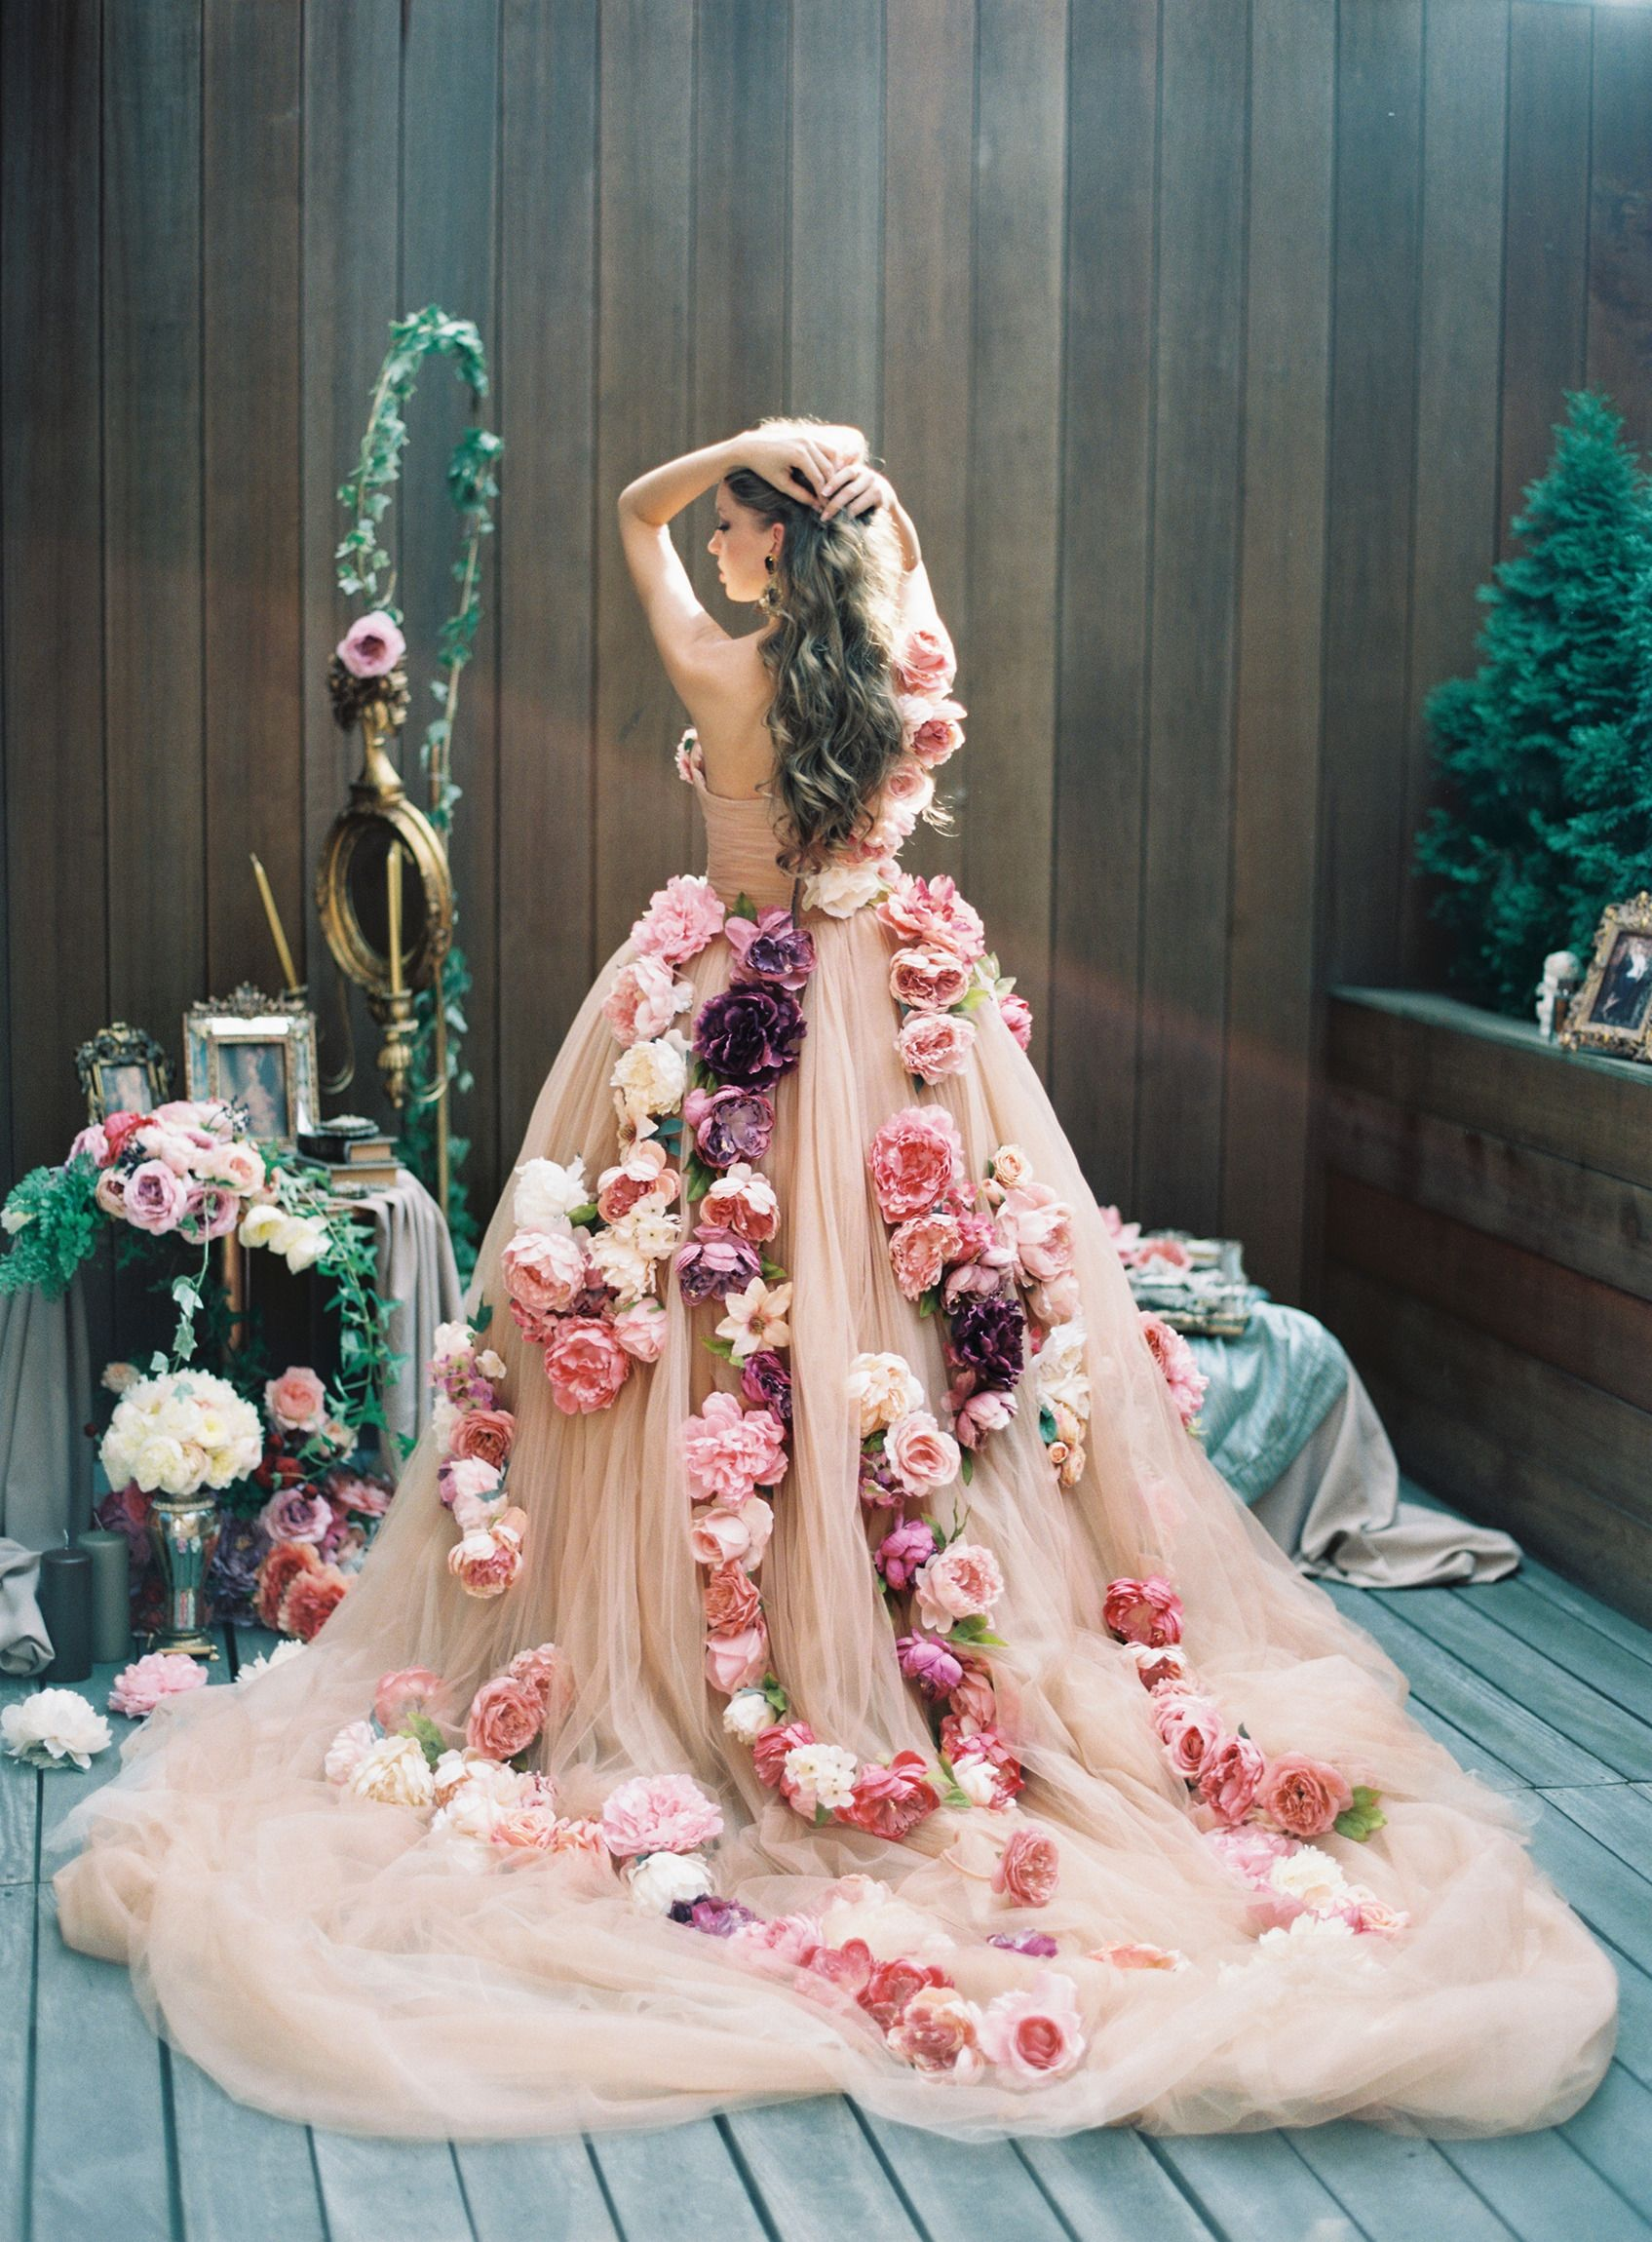 High Fashion Russian Wedding | Russian wedding, Photography and ...